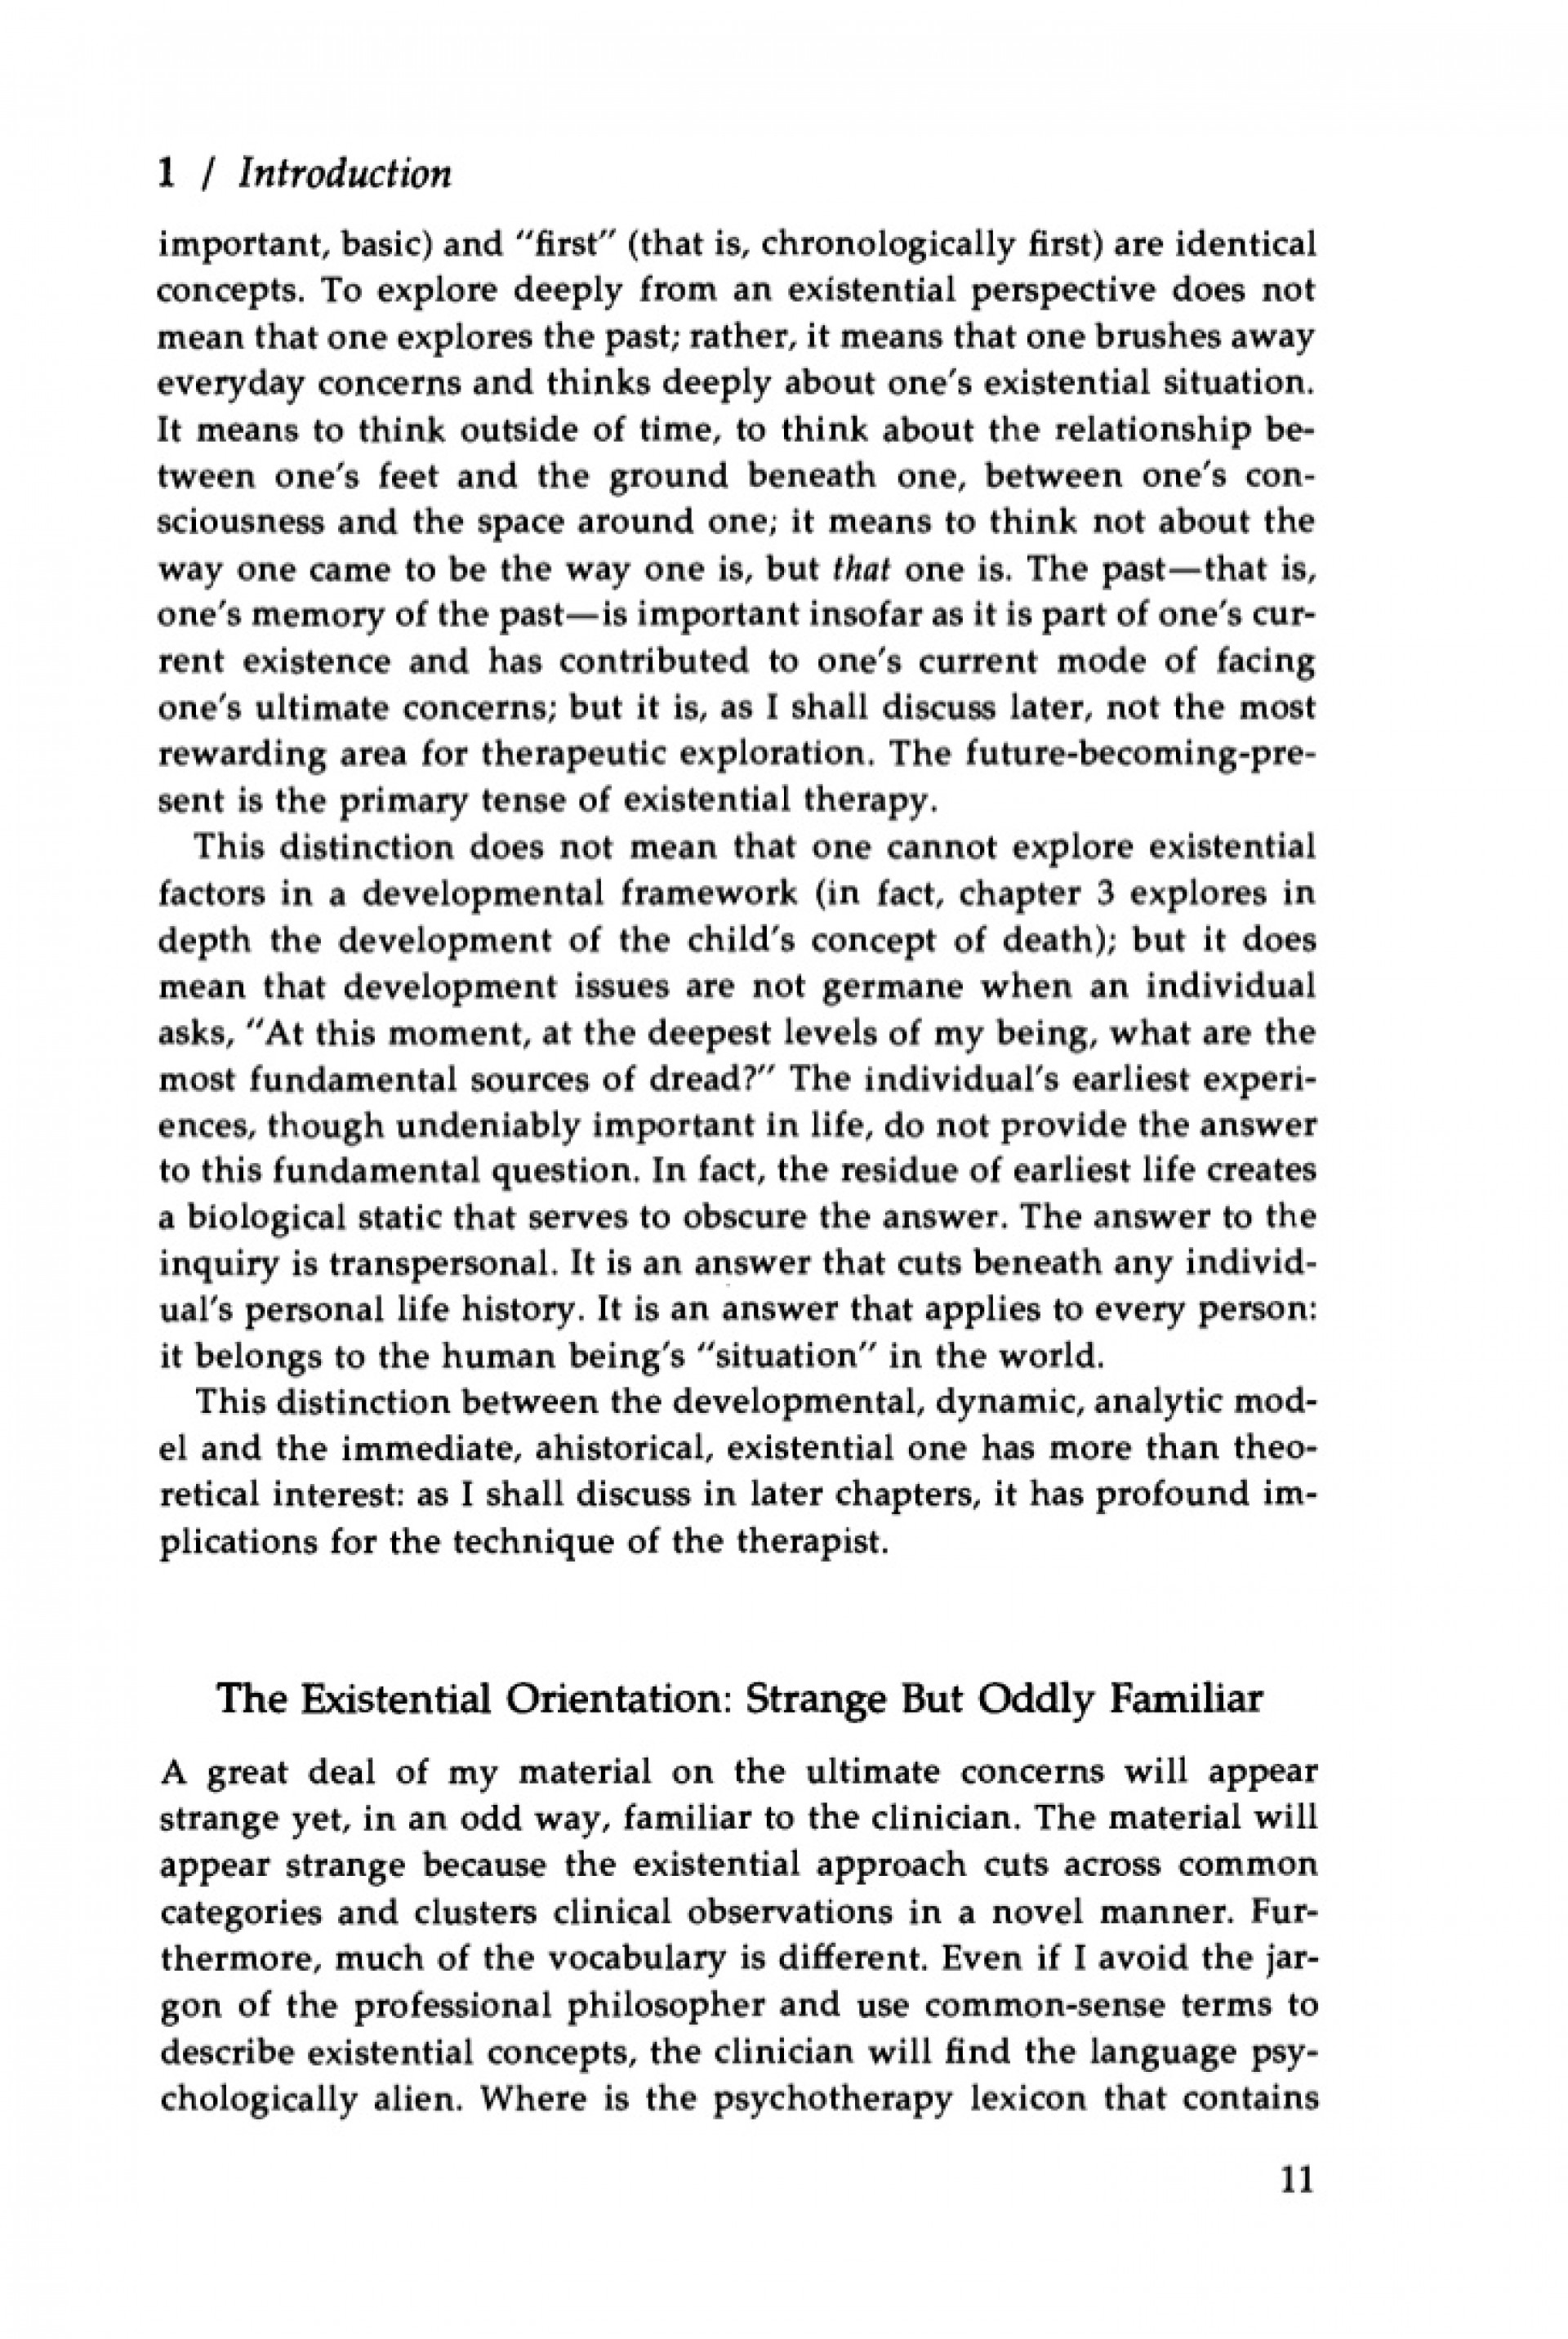 018 About Me Essay Essays On Yourself How To Write Leadership For App Existential Psychotherapy An Someone Argumentative Reddit Meme Please Uk Cheap Meaning Phenomenal Titles Social Media Medical Assistant Medicine 1920